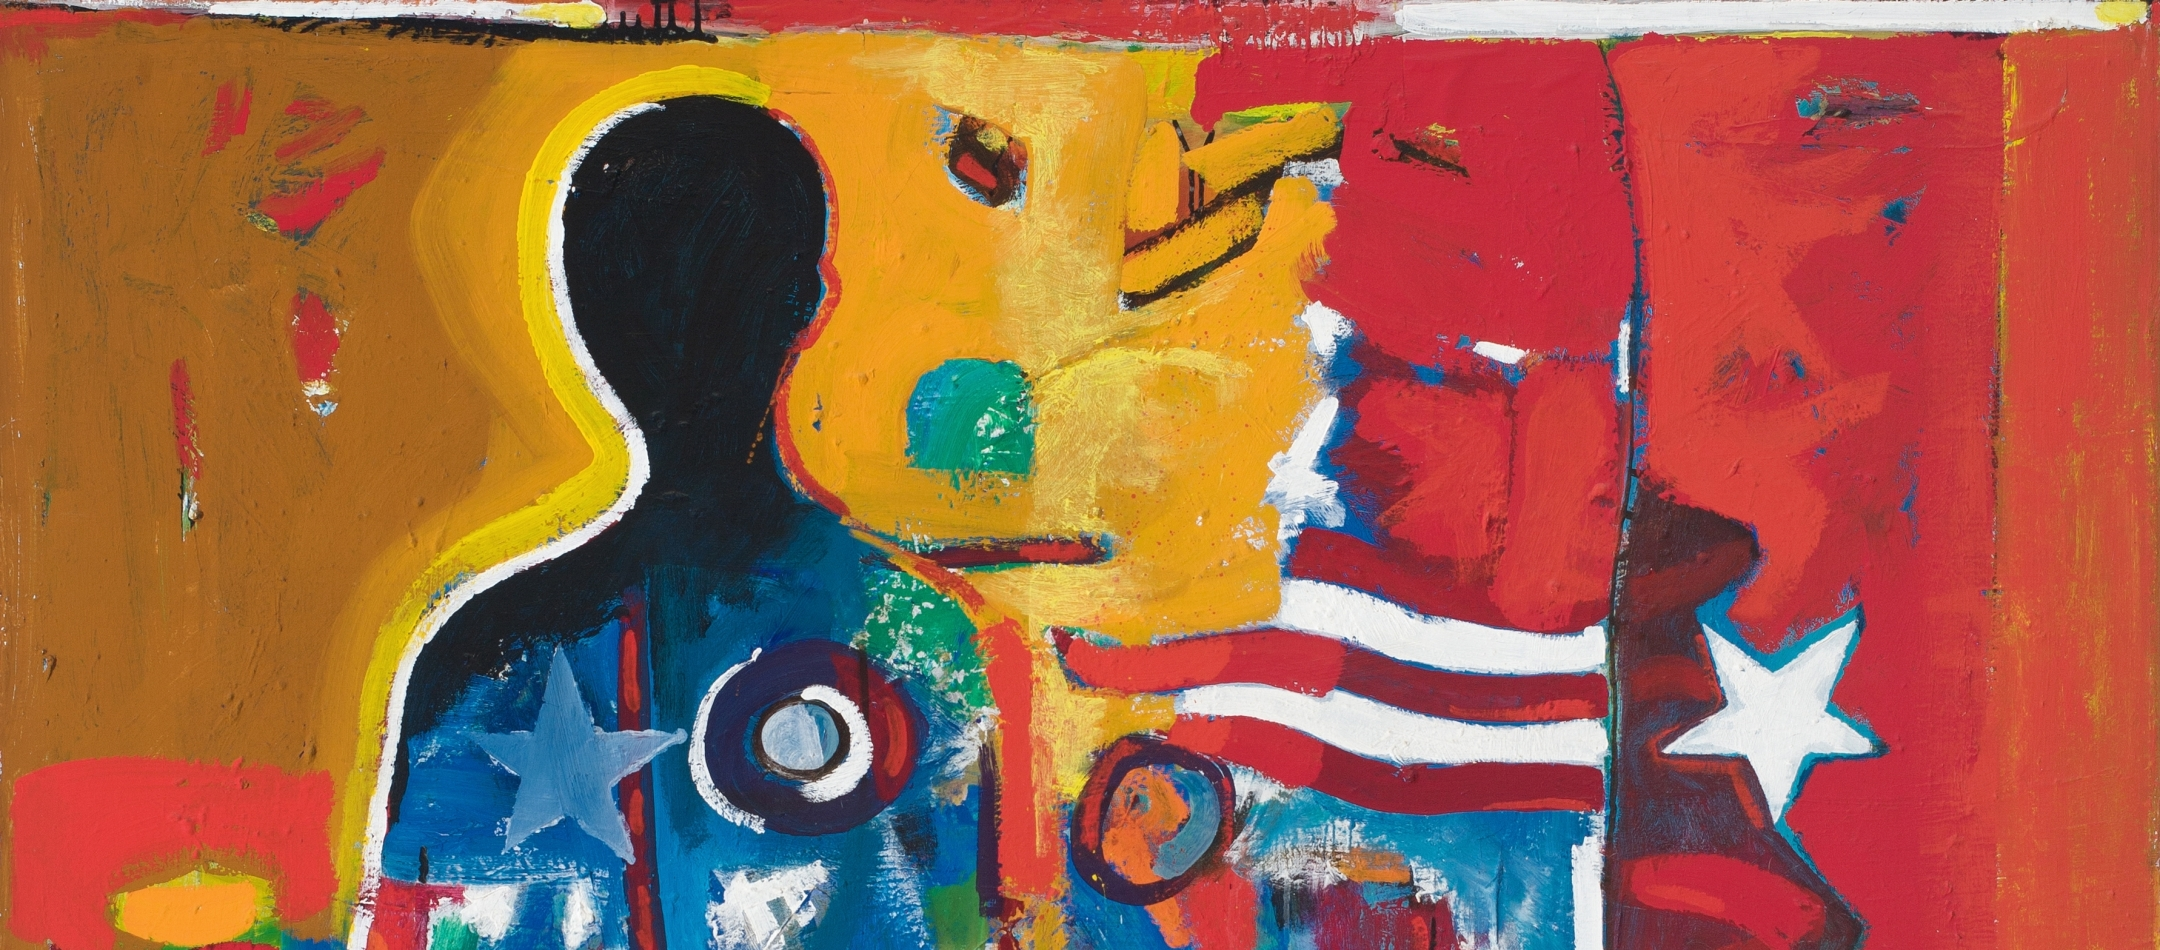 David Driskell: Resonance, Paintings 1965 - 2002